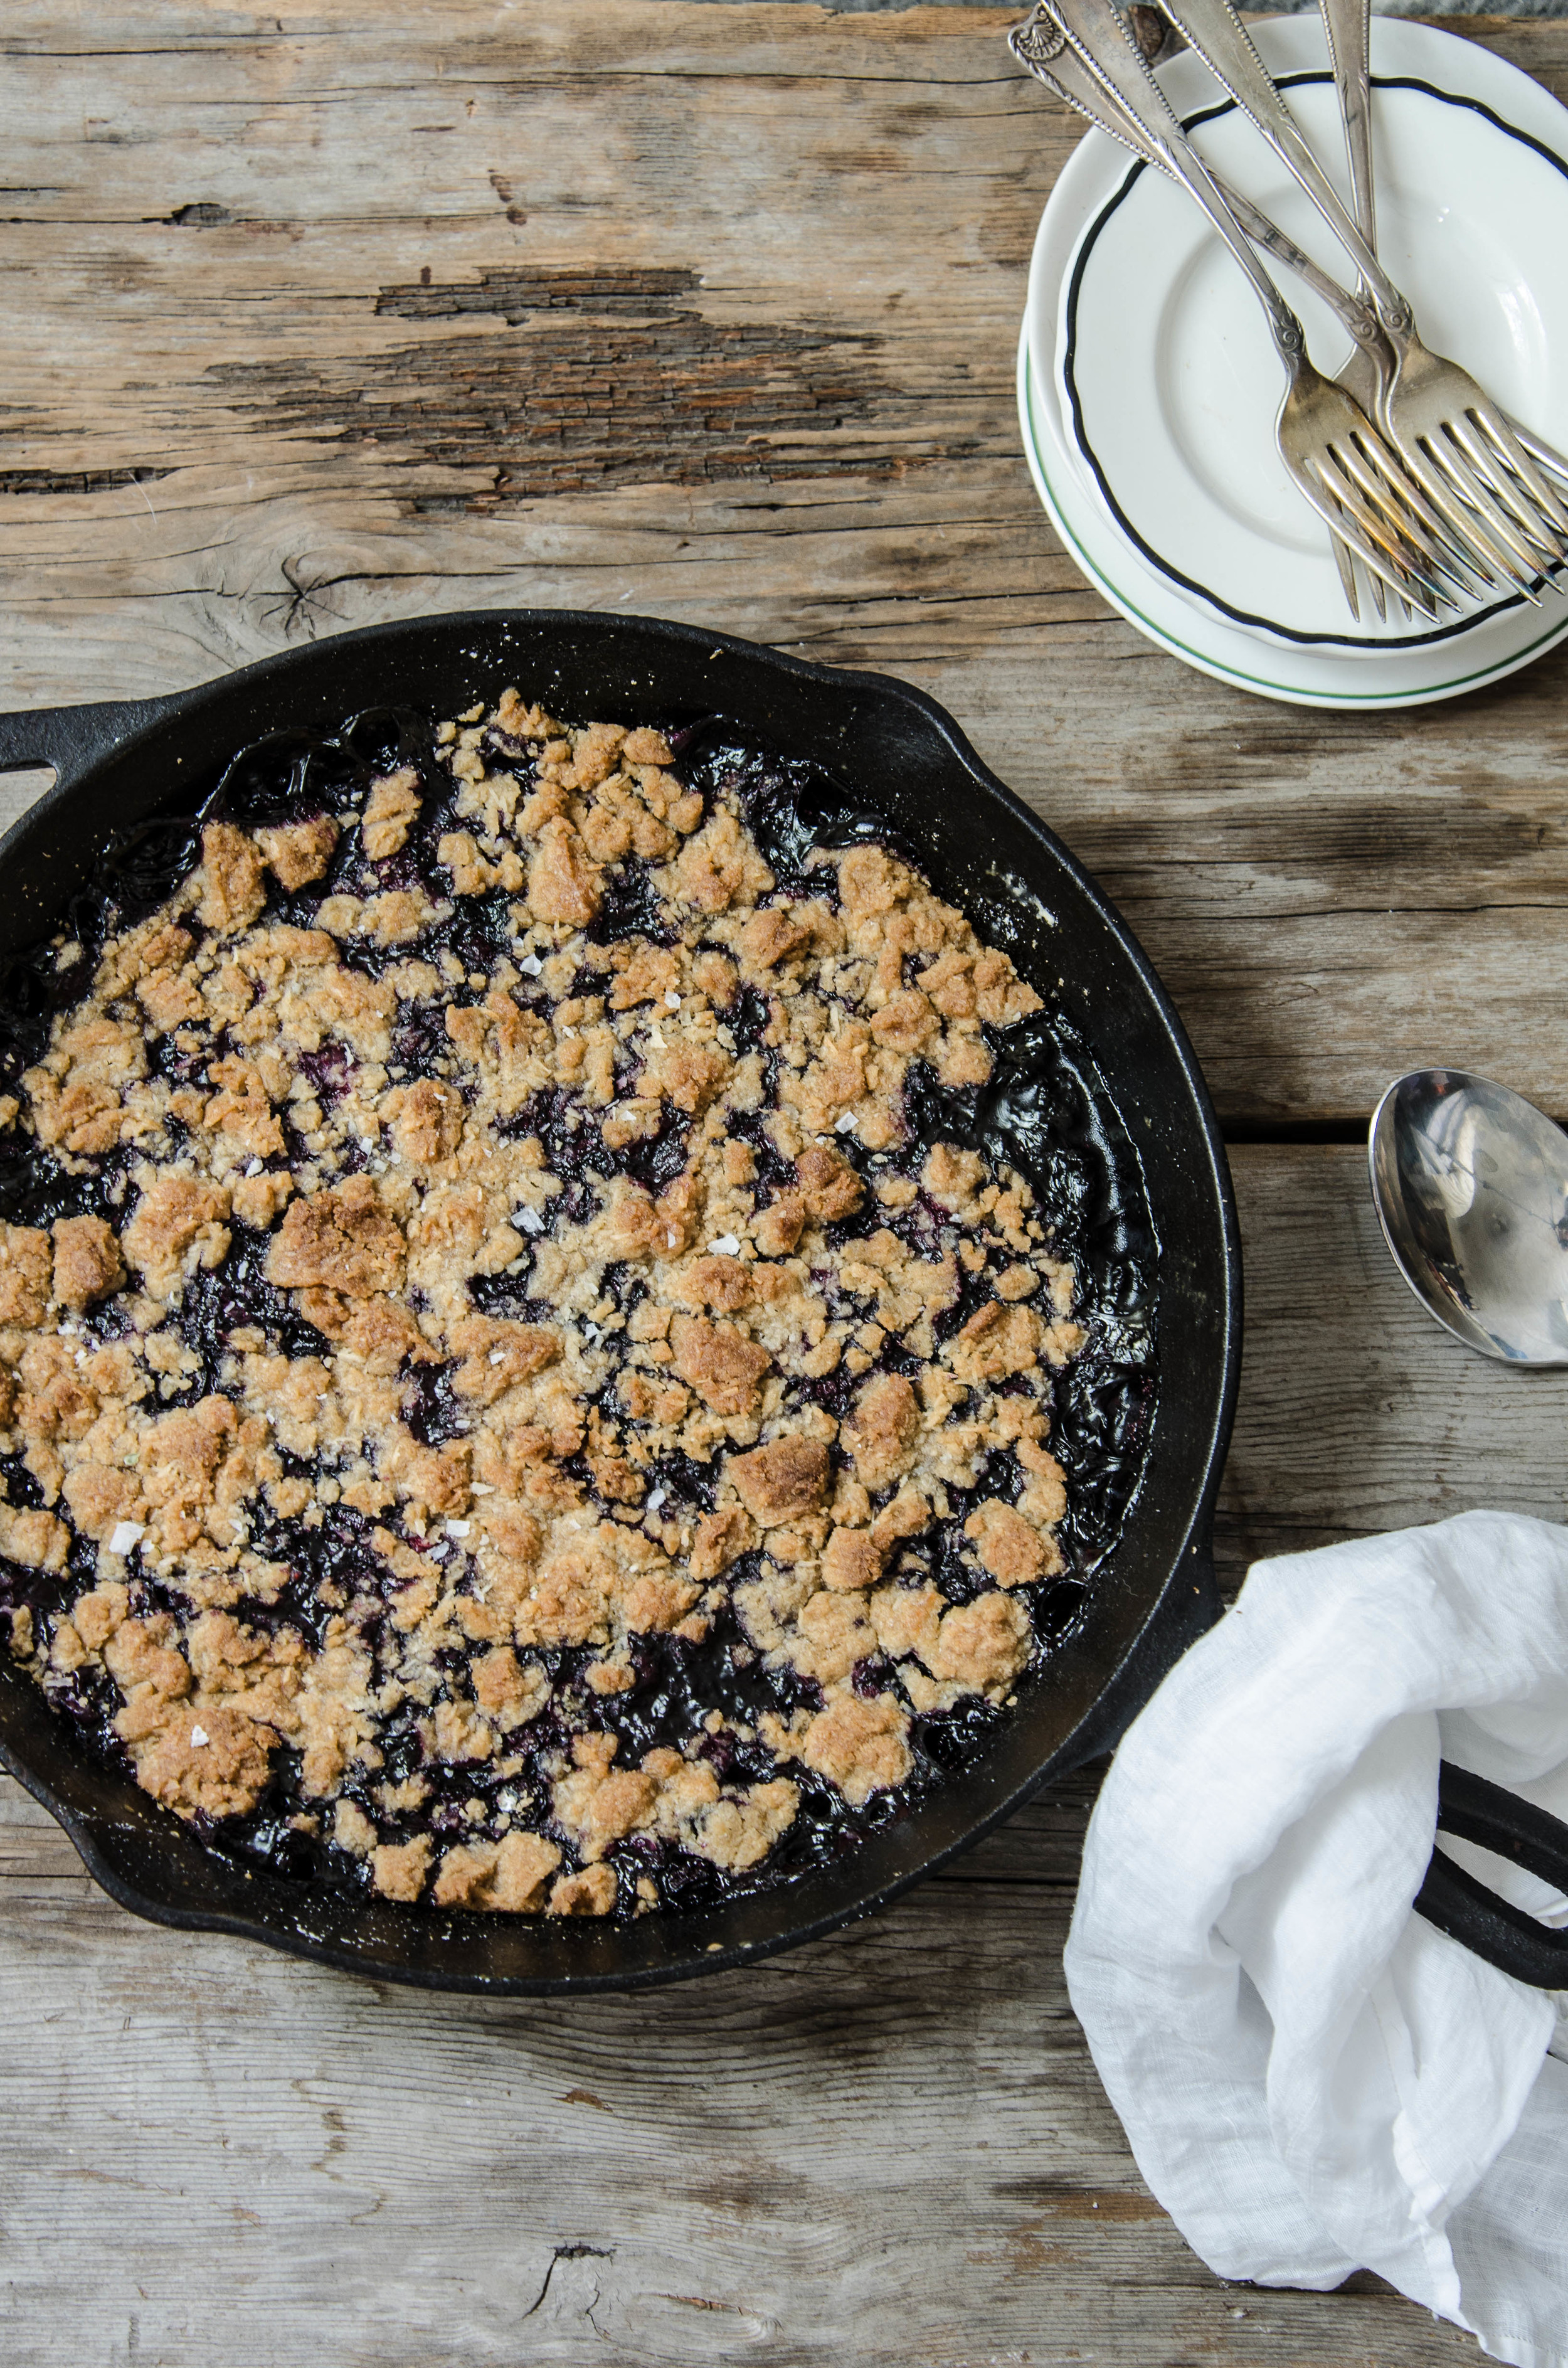 ROSE & IVY Journal Blueberry Coconut Crisp